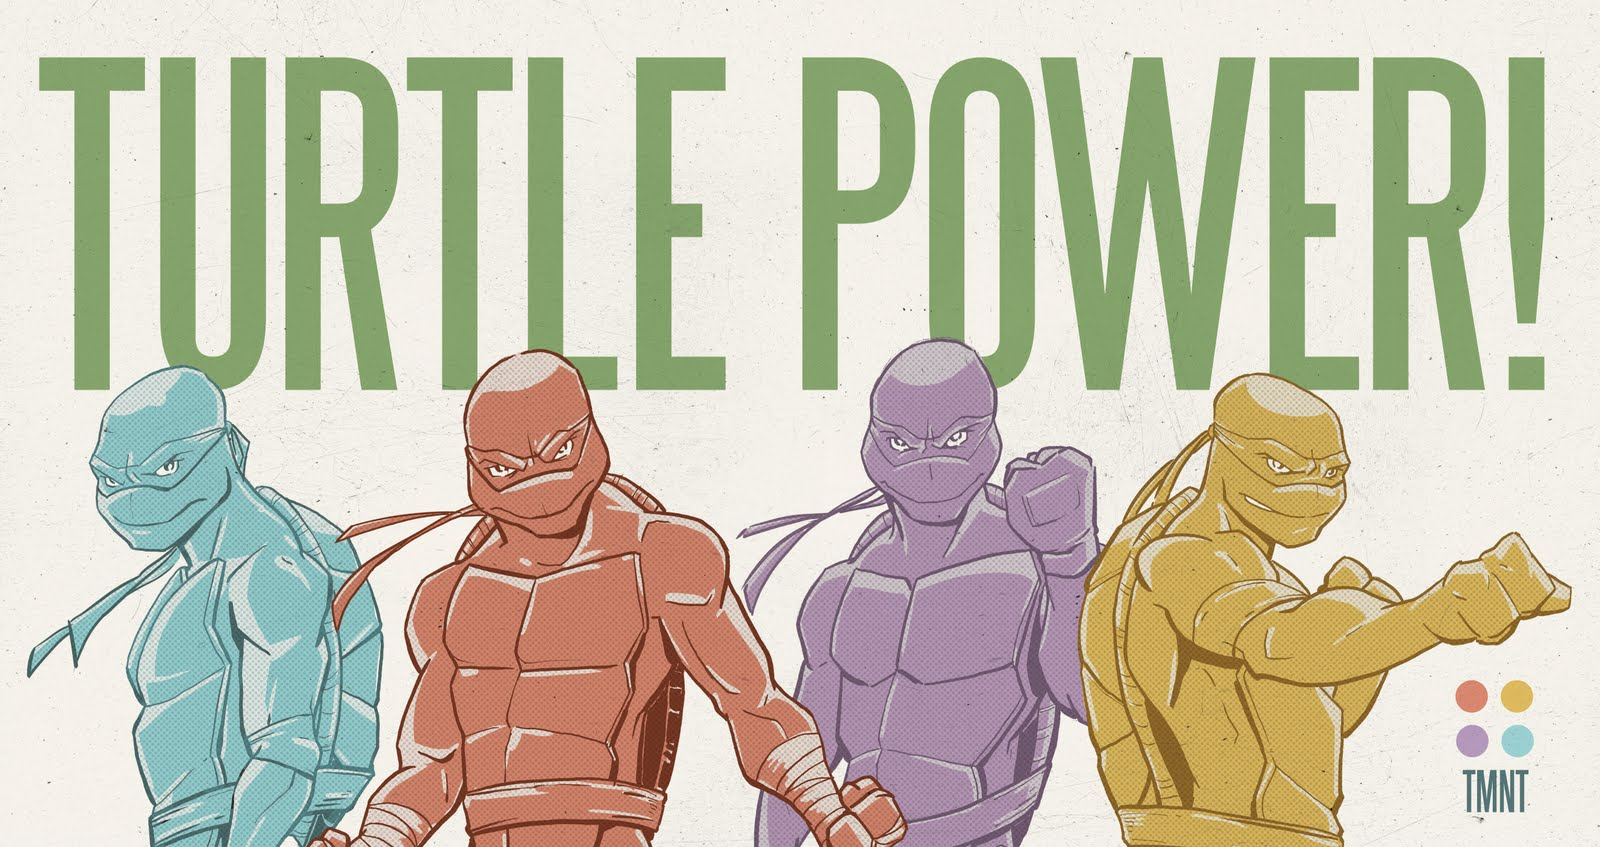 Turtle+Power by Adam Limbert